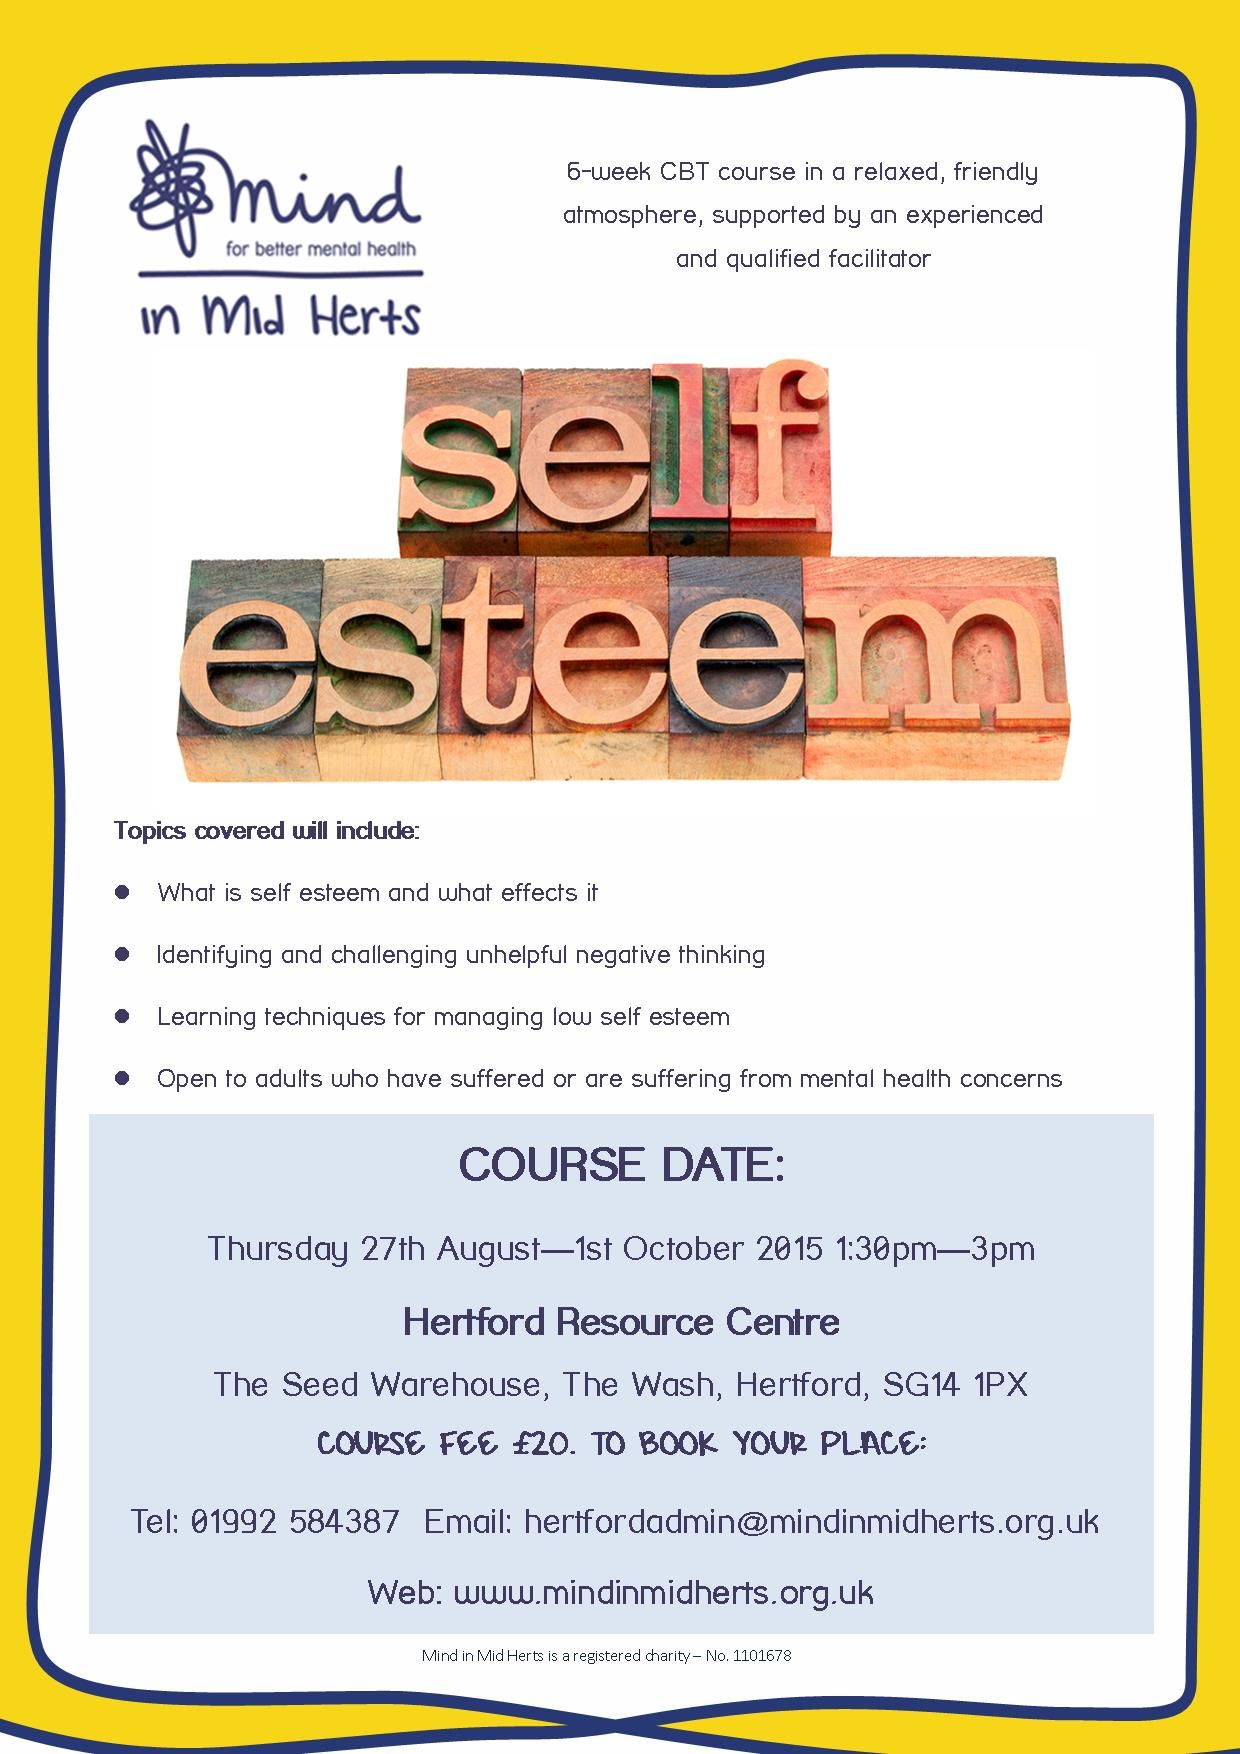 selfesteem dating Learn how to tackle self-esteem issues so that you are able to have better relationships with your friends.